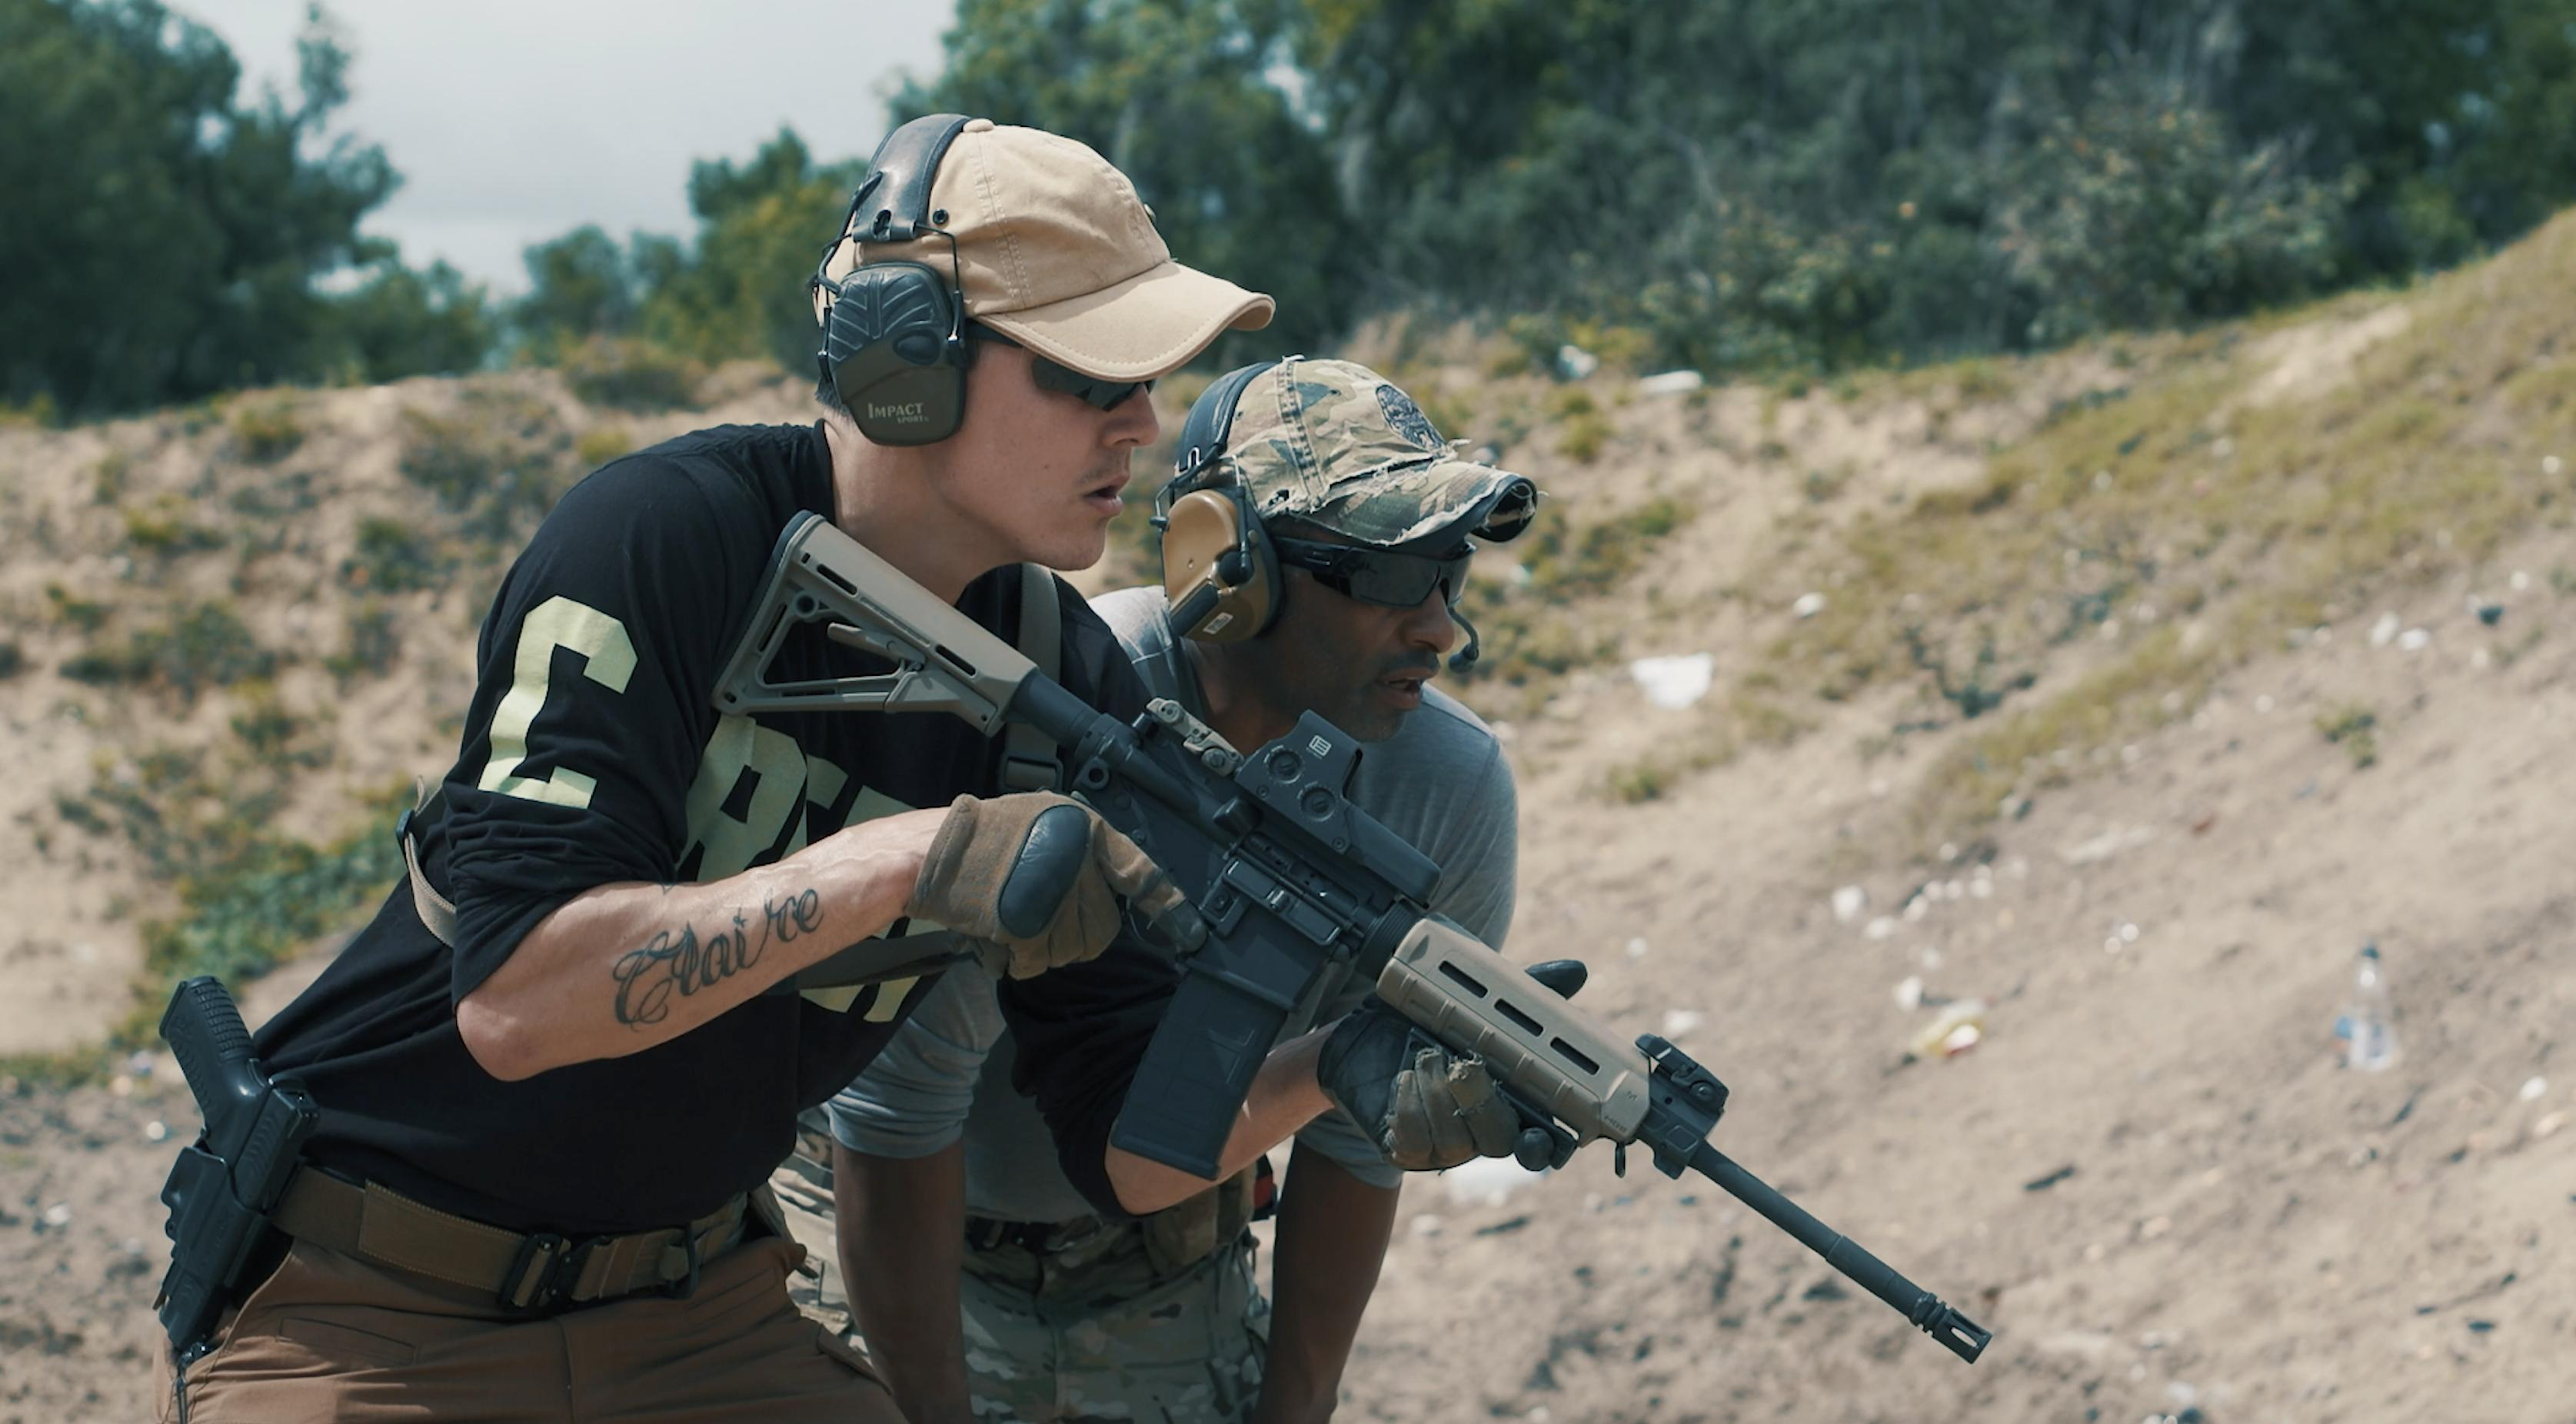 Bryan Bachman was an Infantryman Staff Sergeant in real life for eight years and is extremely proficient with rifle marksmanship and small unit tactics and techniques.